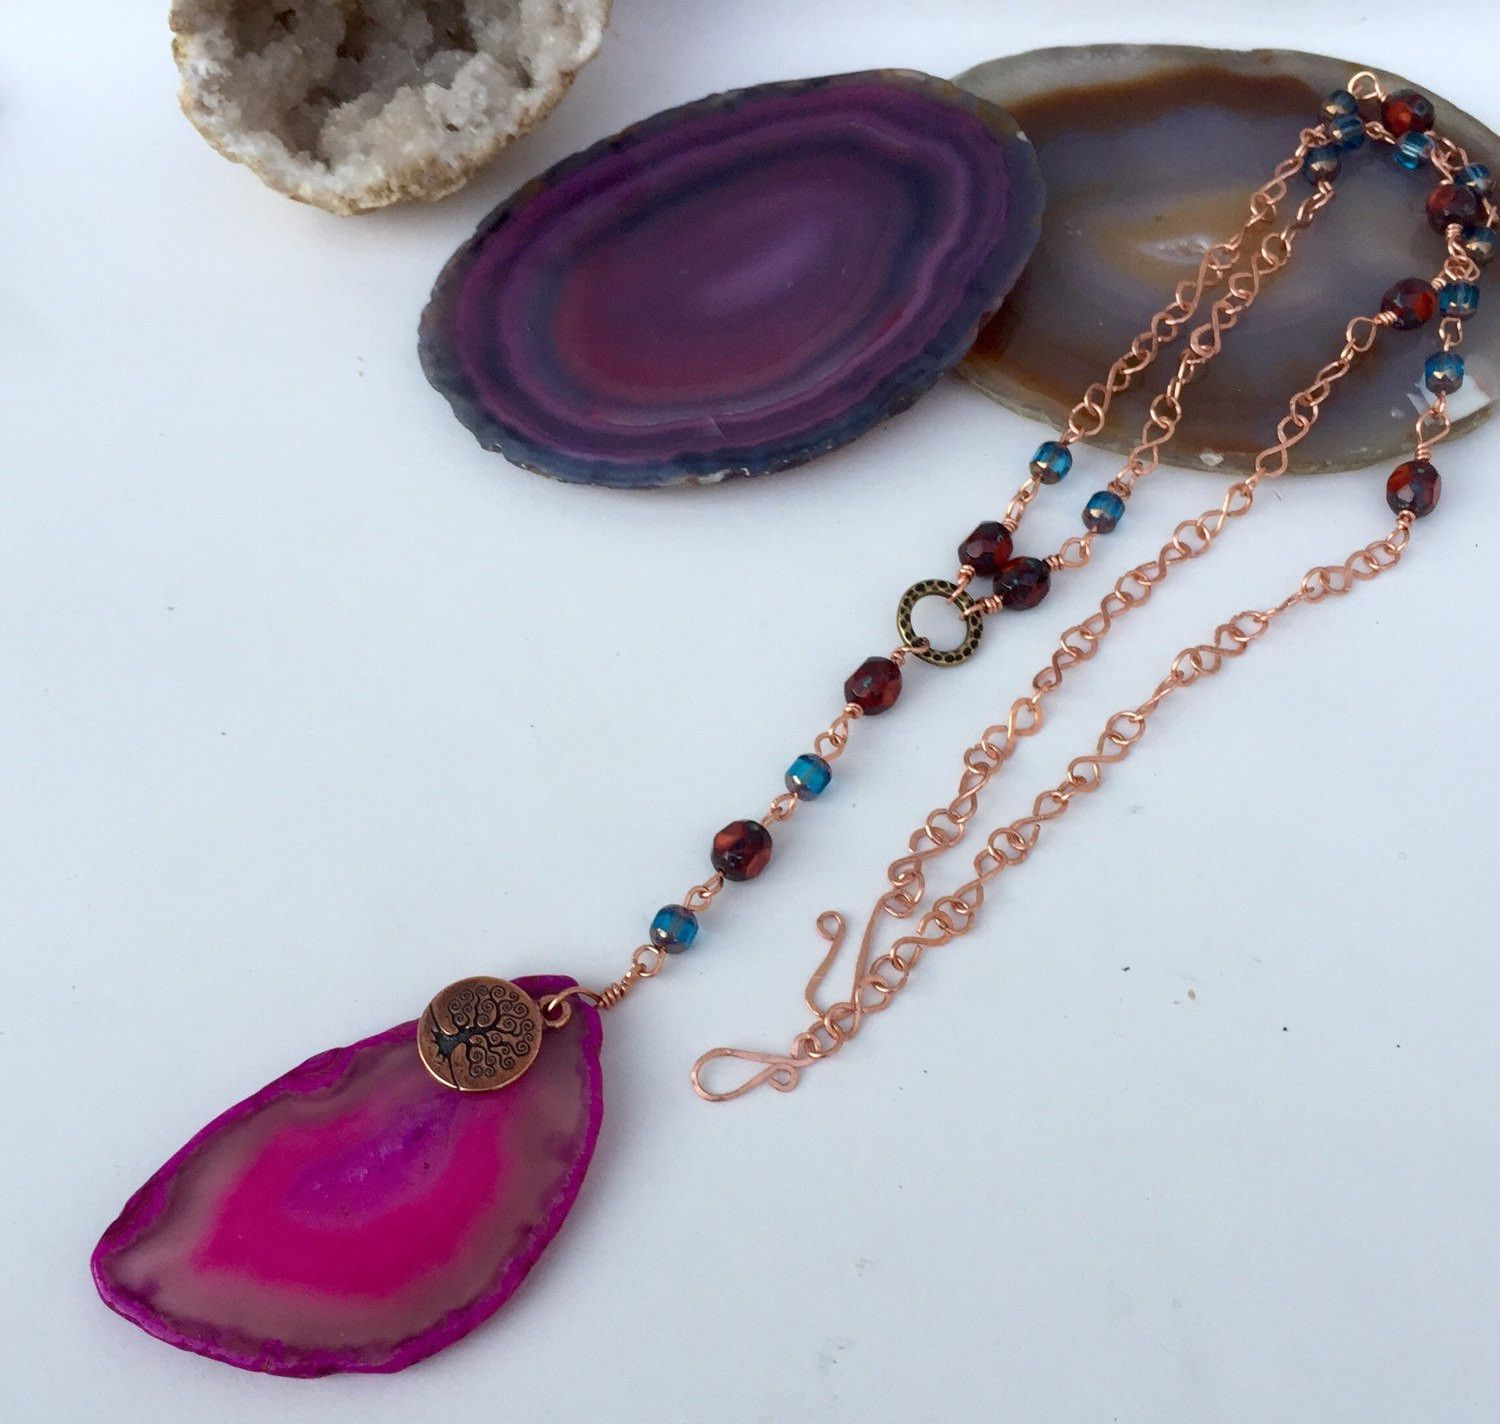 Agate and copper necklace